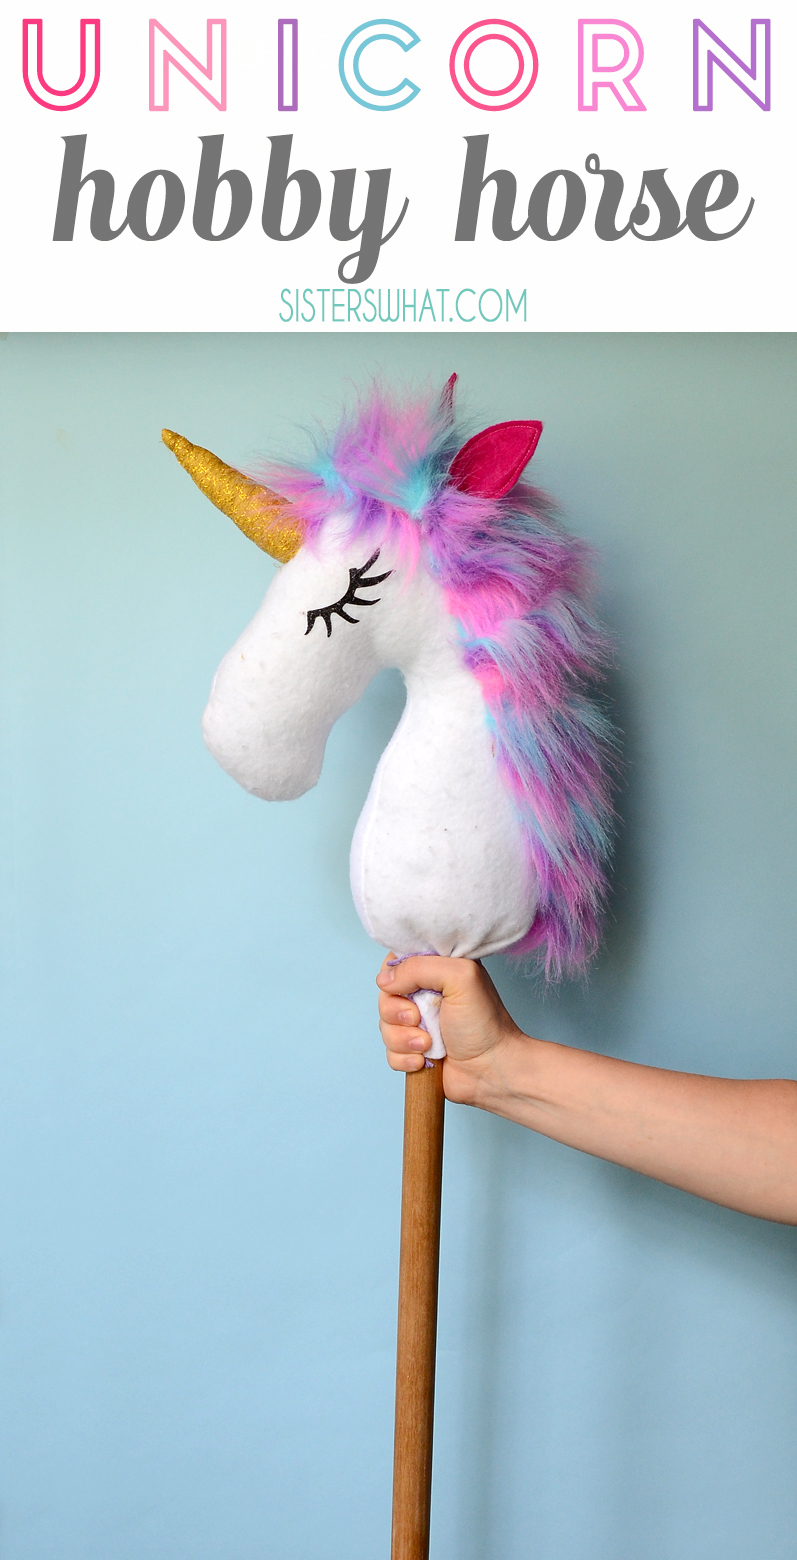 A fun unicorn hobby horse play horse